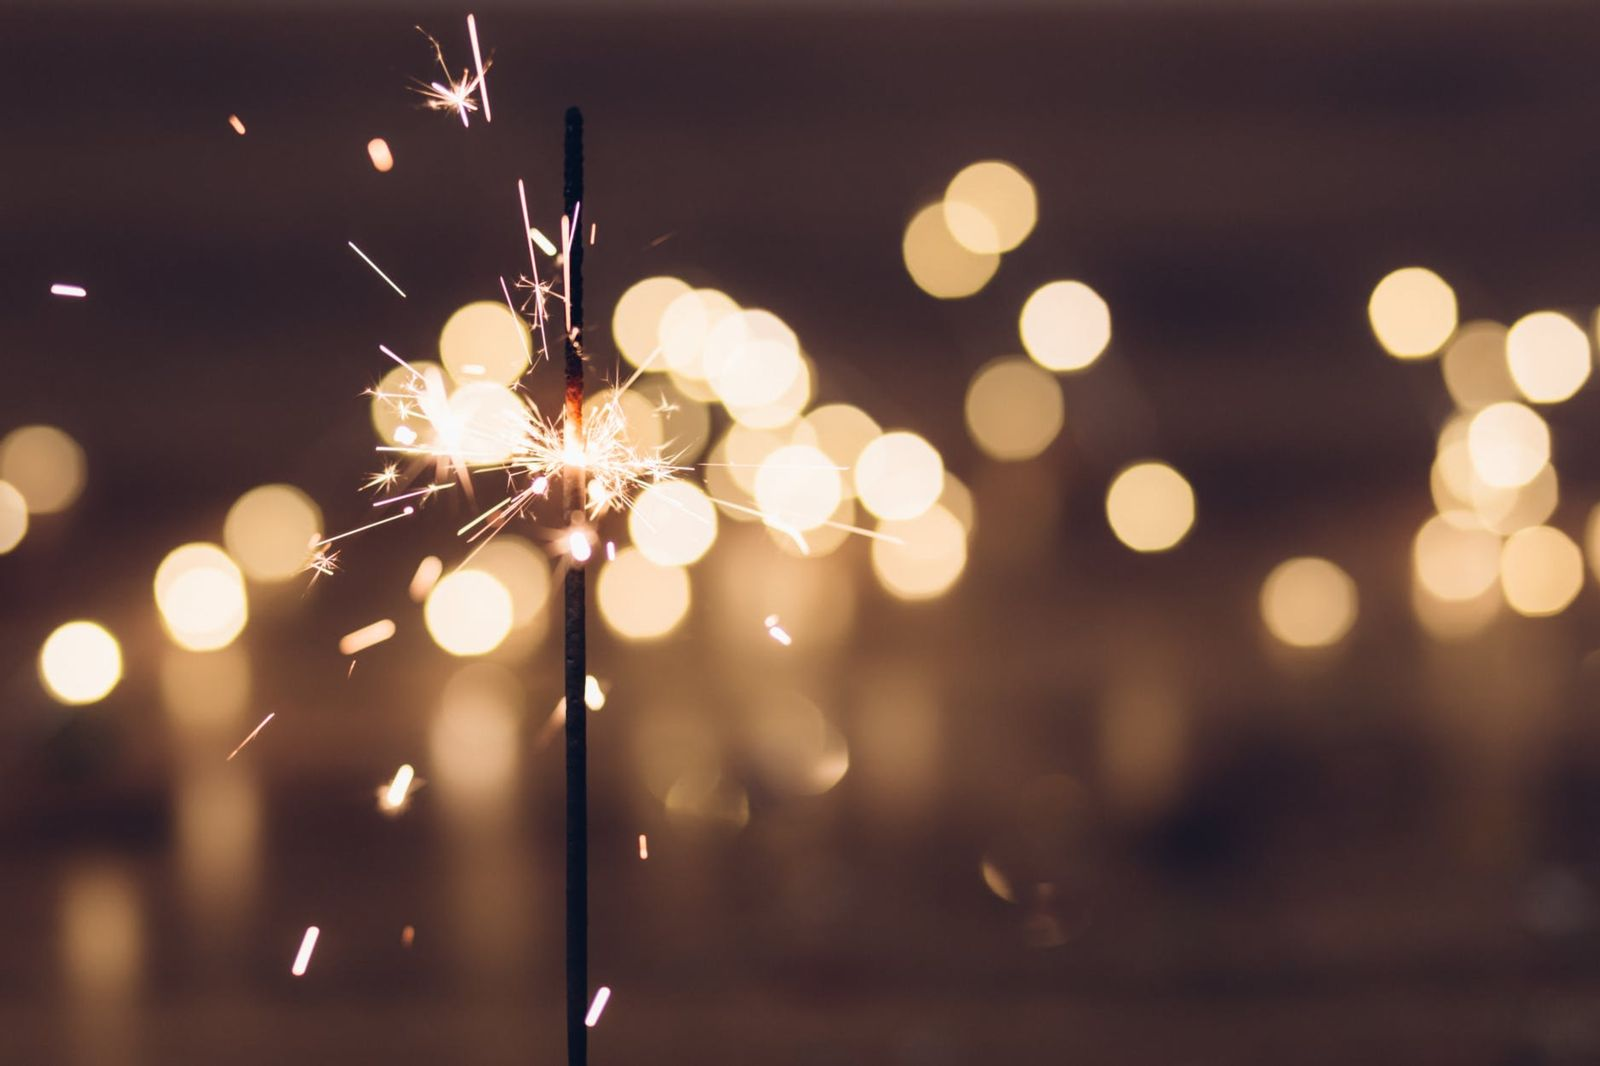 Sparklers and fireworks accidents